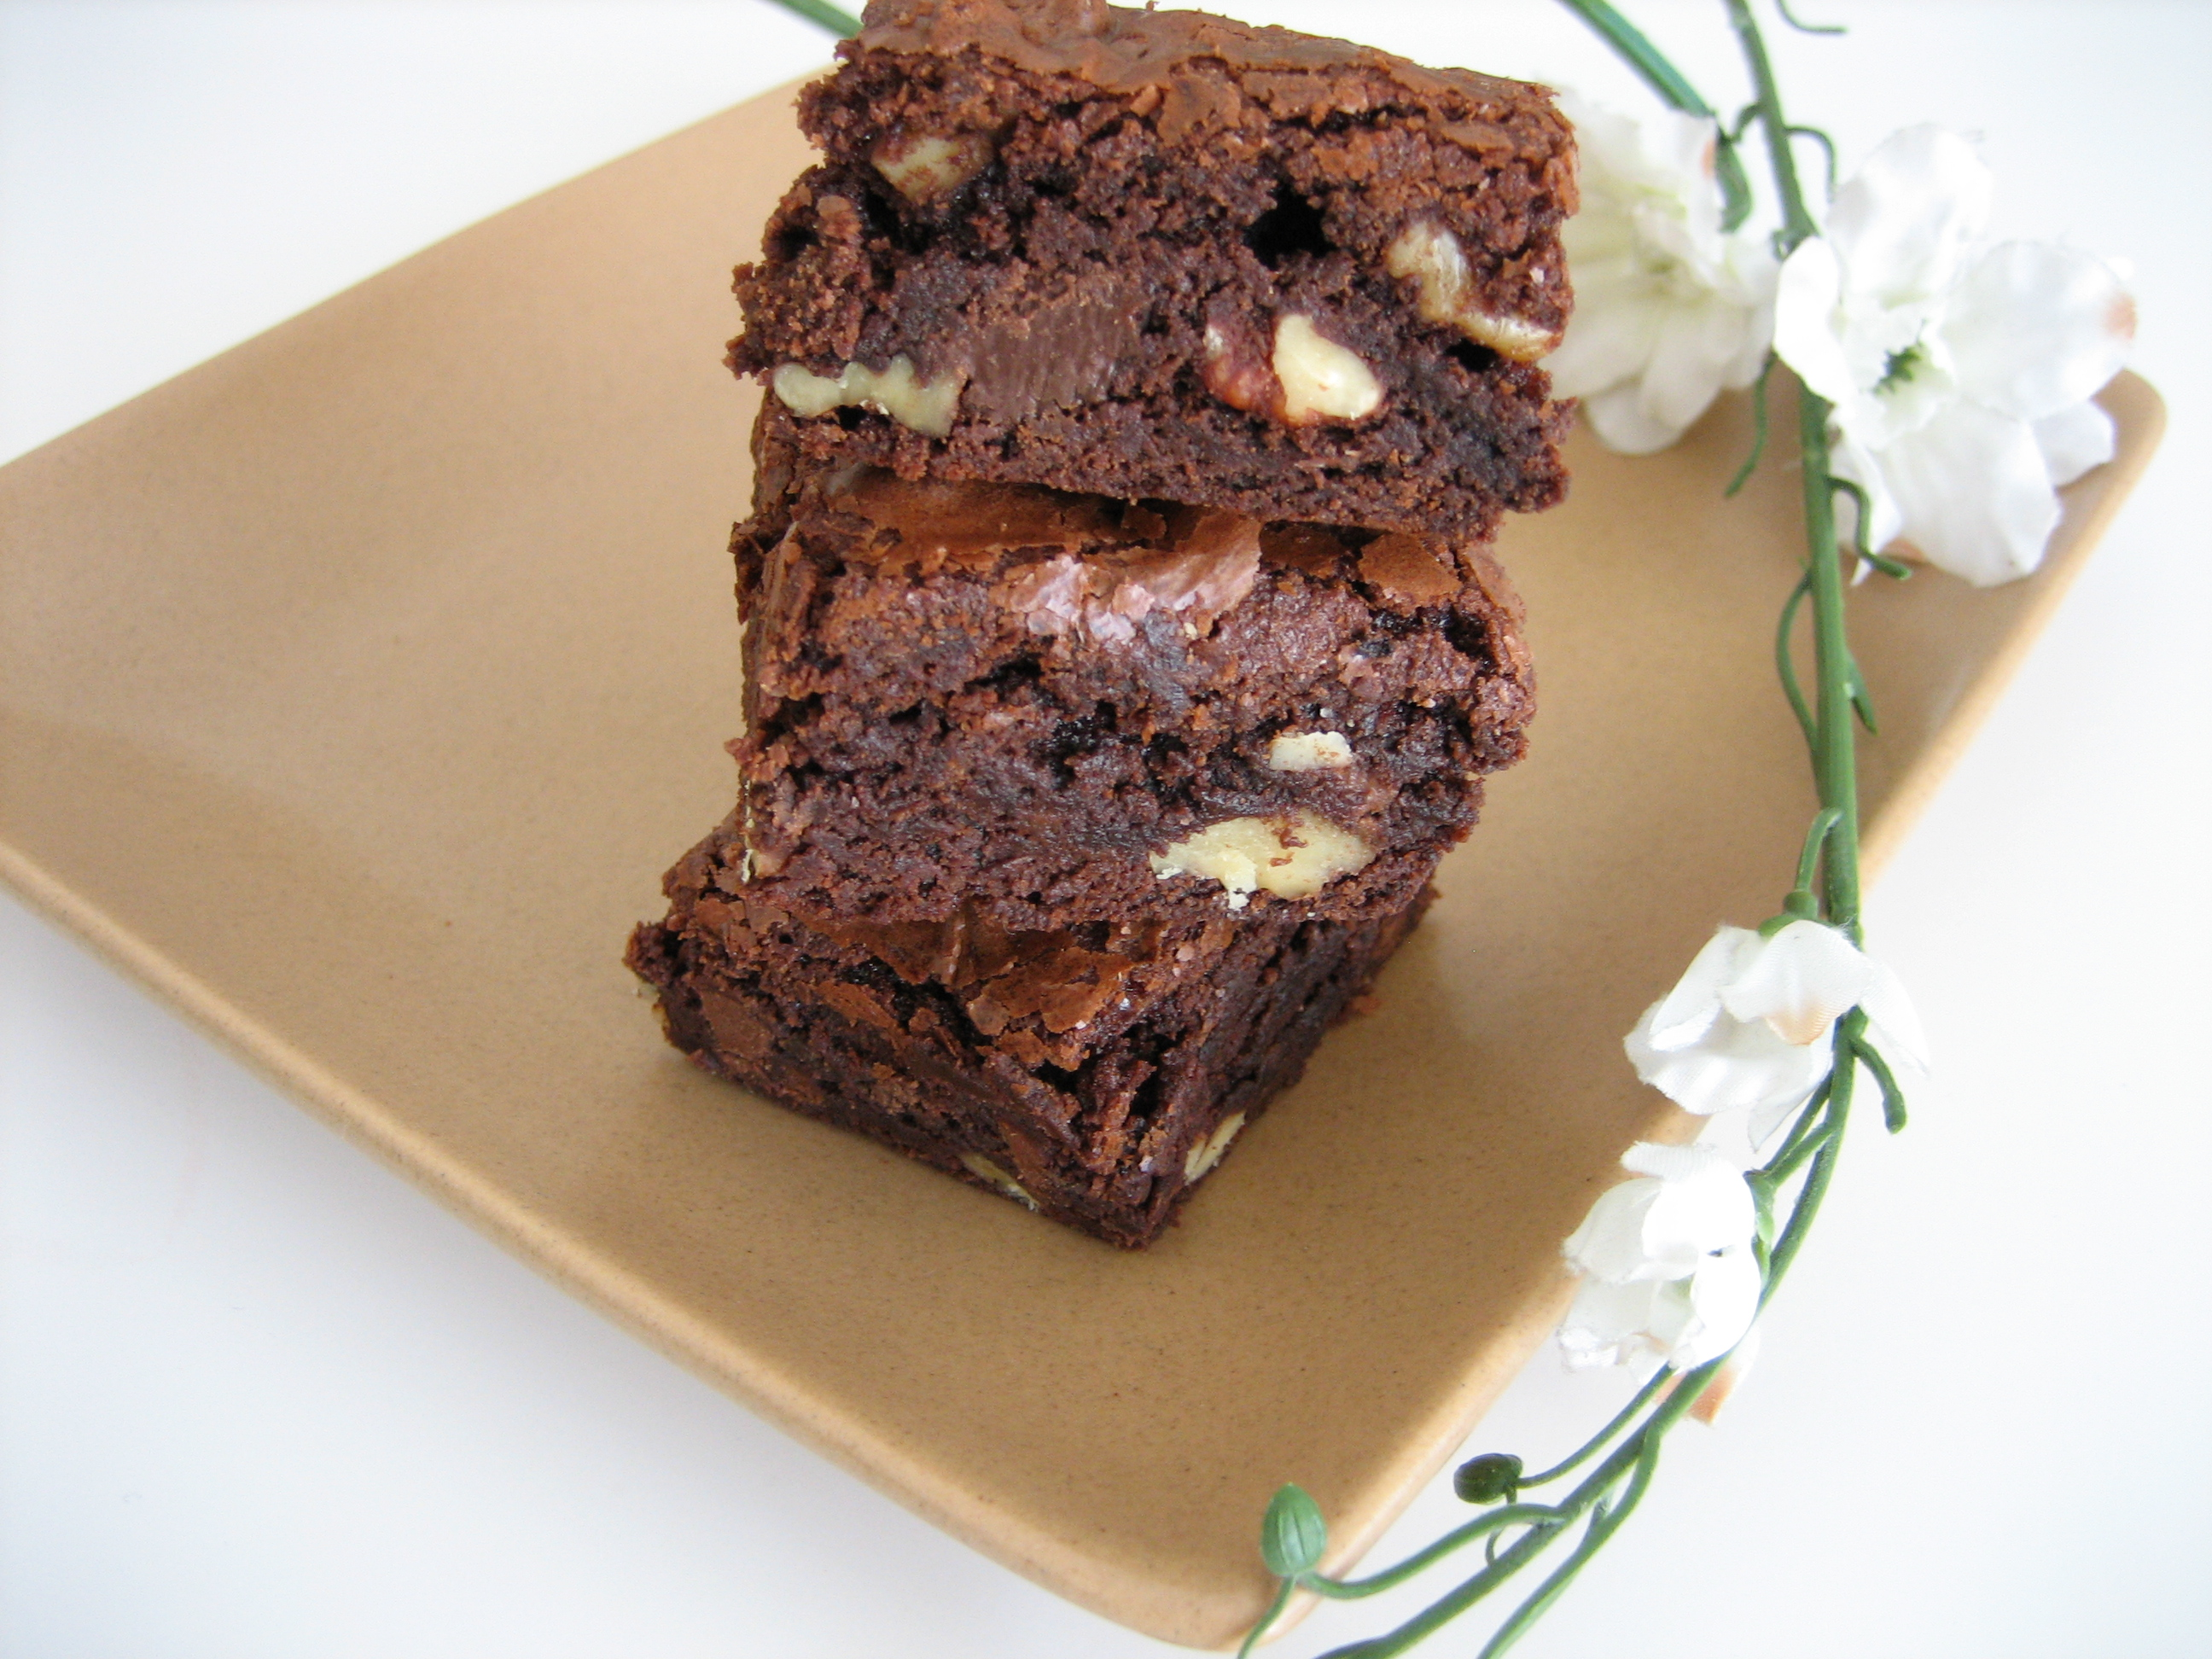 Chocolate-Halzelnut-Brownies